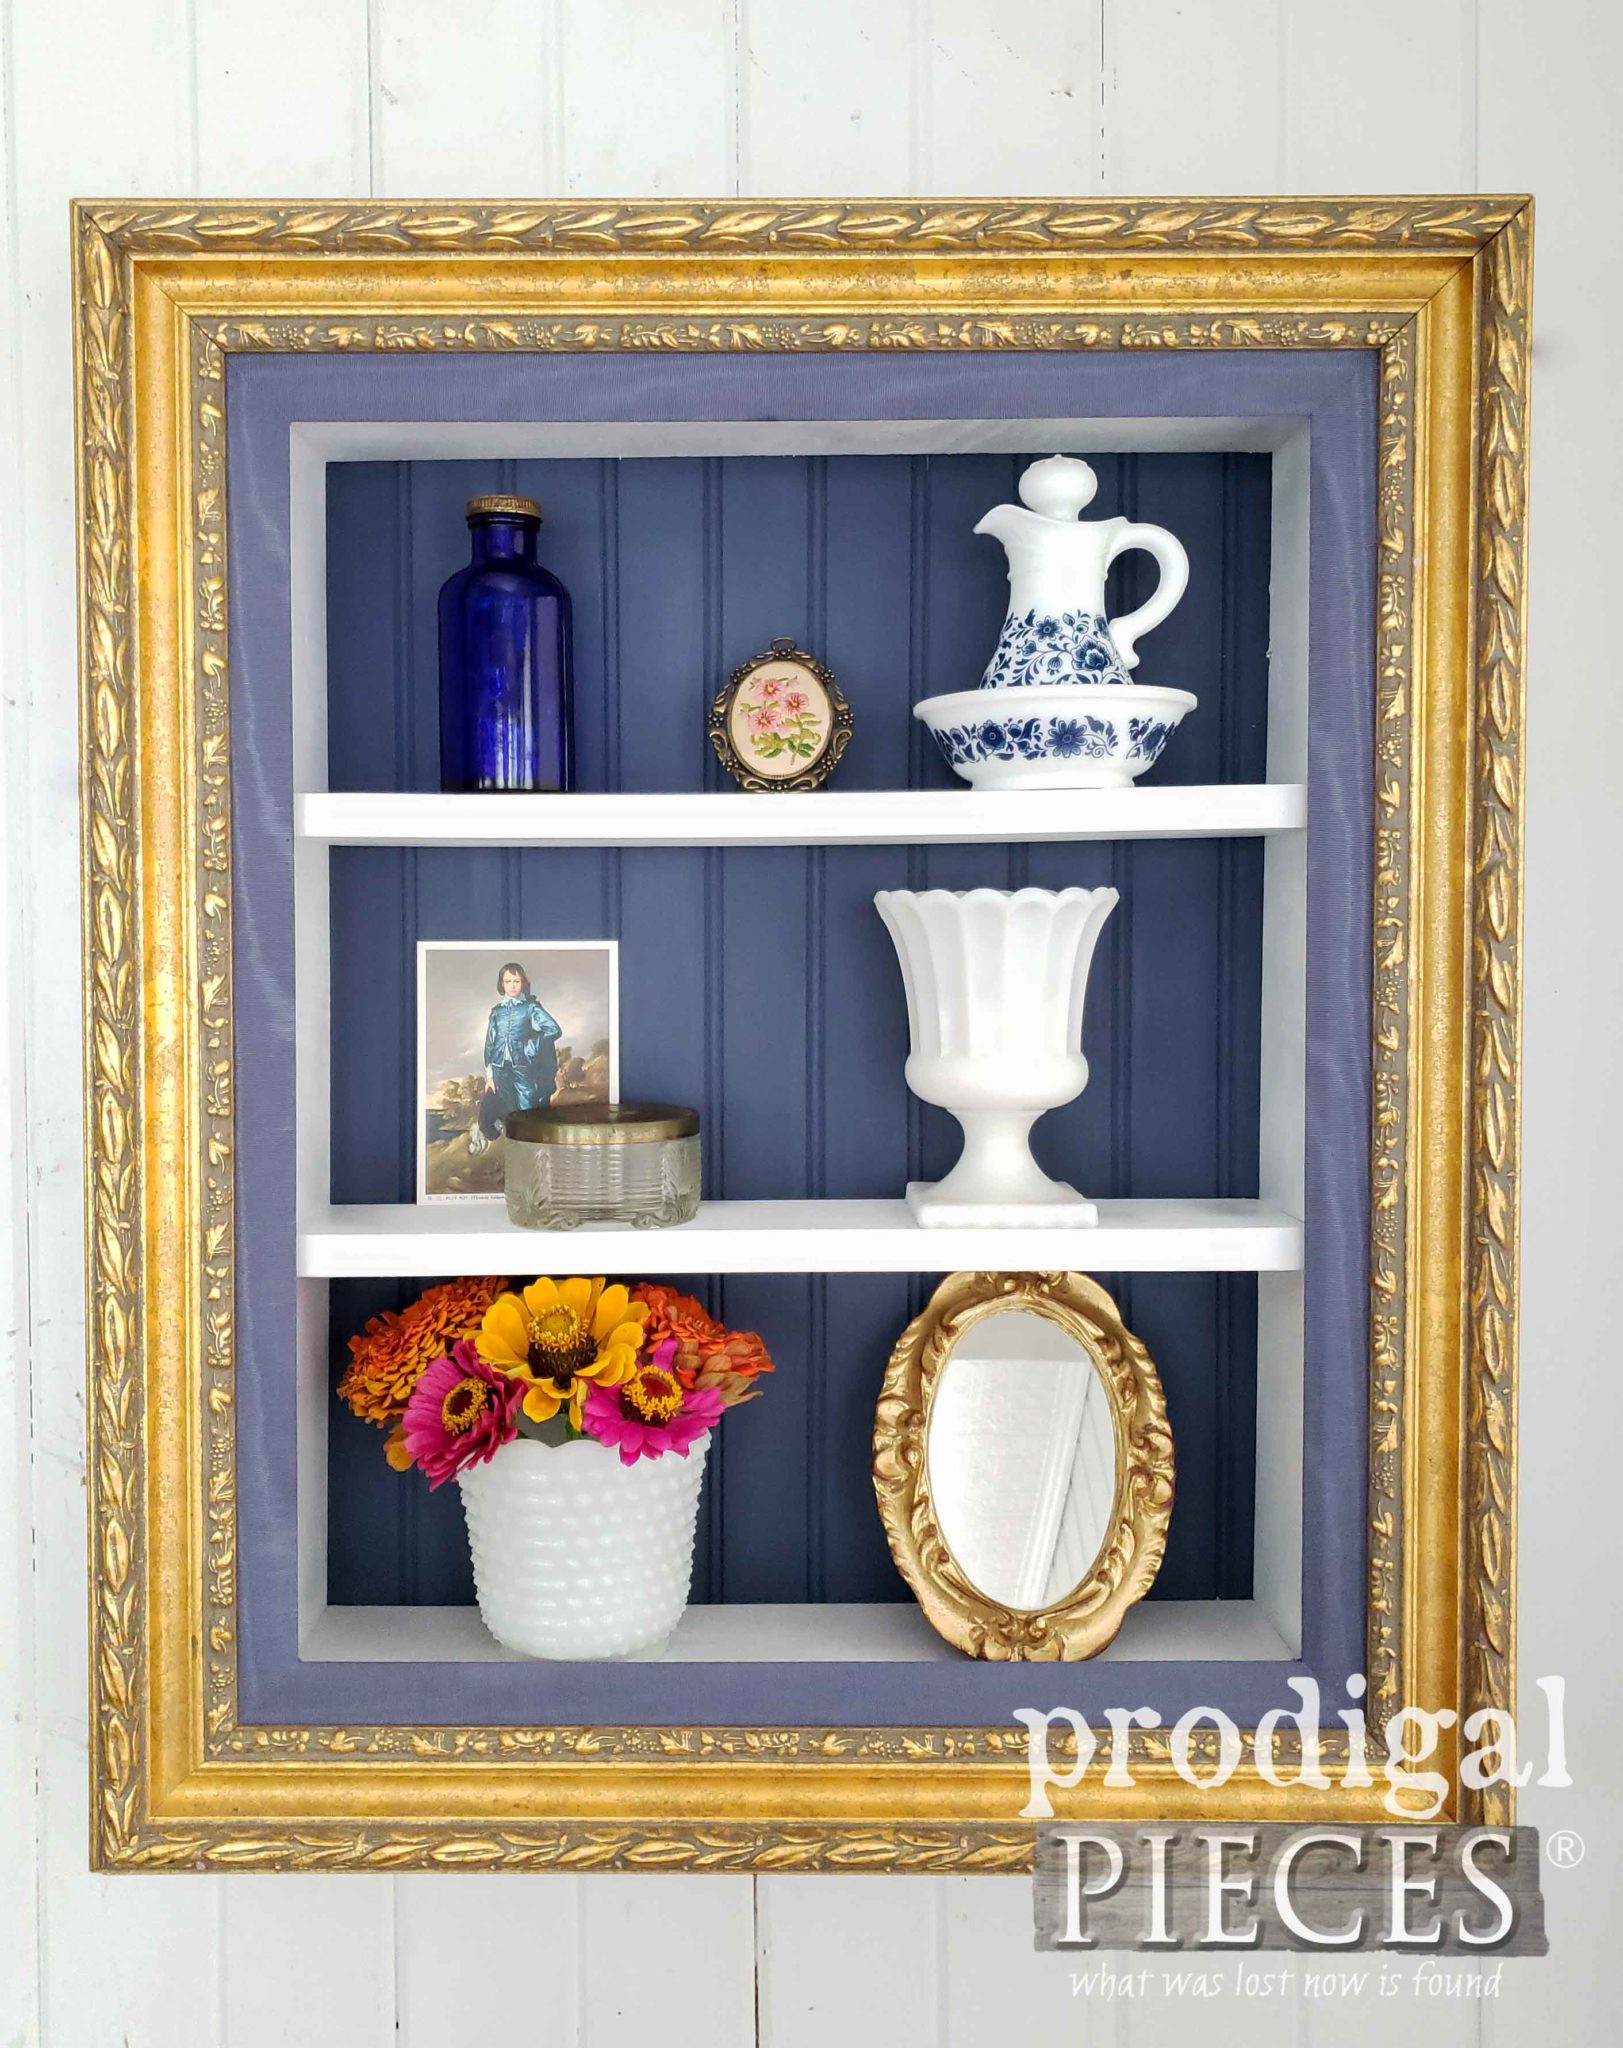 Gilded Repurposed Picture Frame Shelf with Blue Accents for Beautiful Home Decor by Larissa of Prodigal Pieces | prodigalpieces.com